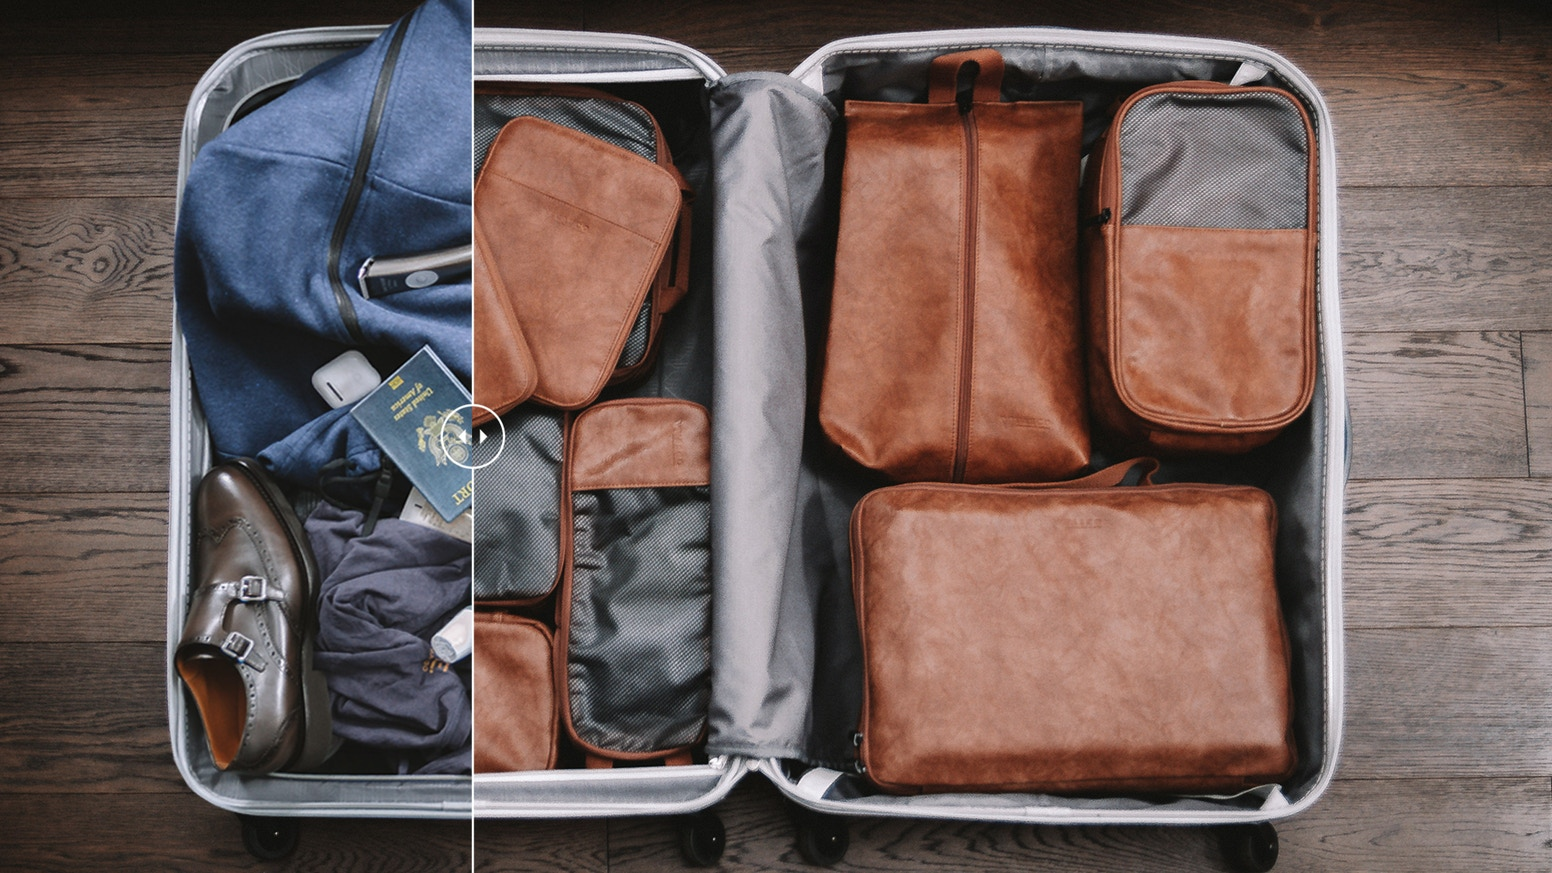 Complete 9-piece kit of packing cubes and other bags, everything you need is always neatly packed, but readily accessible.